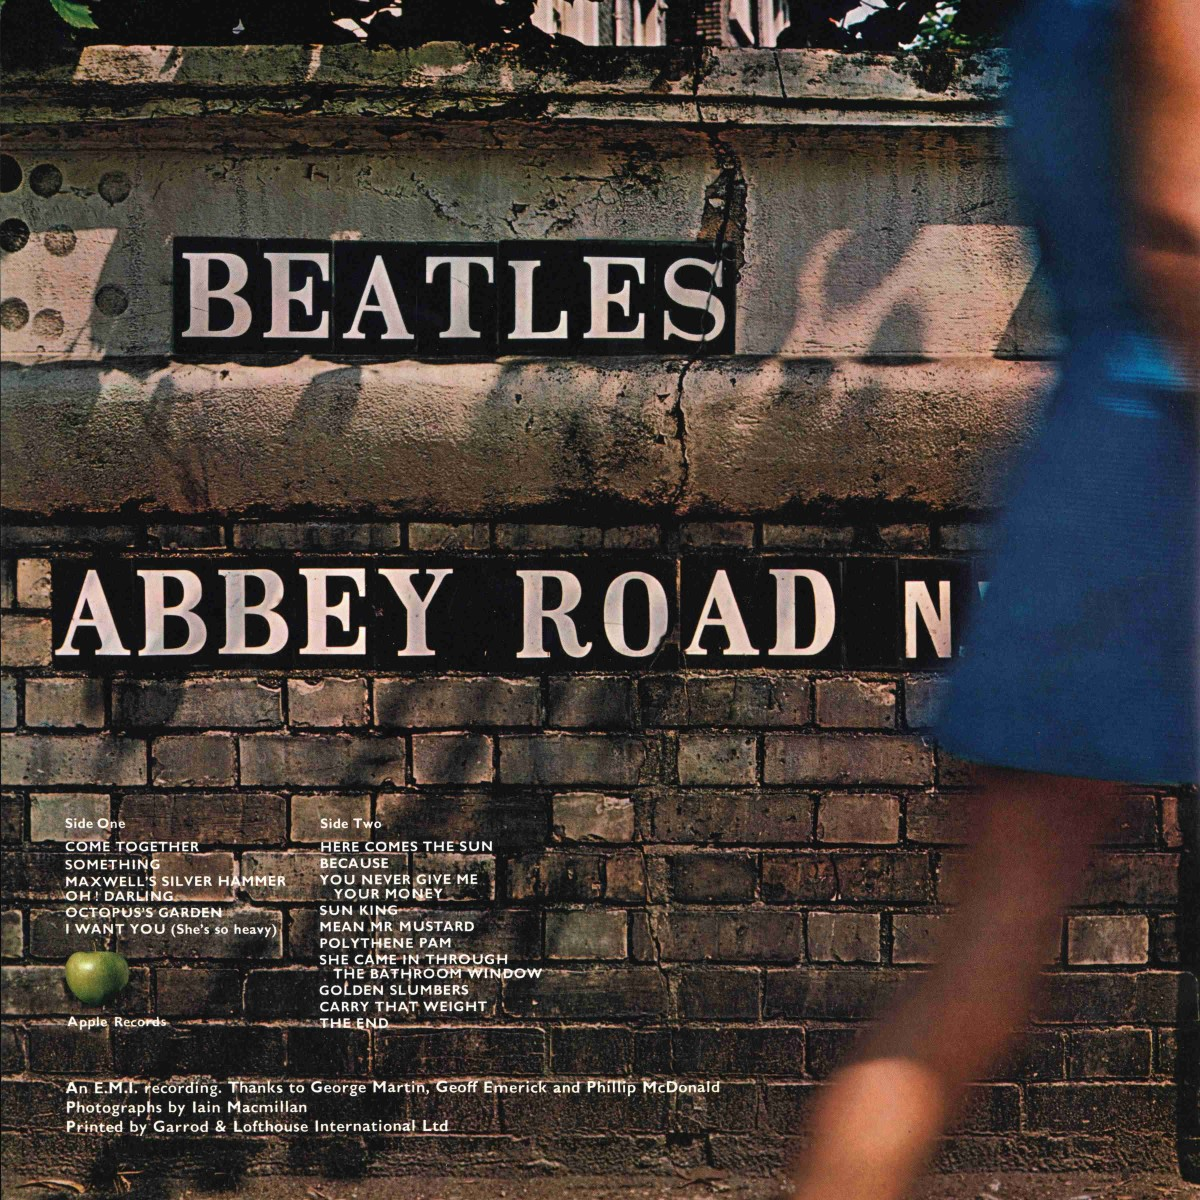 abbey-road-back-cover2jpg.jpg